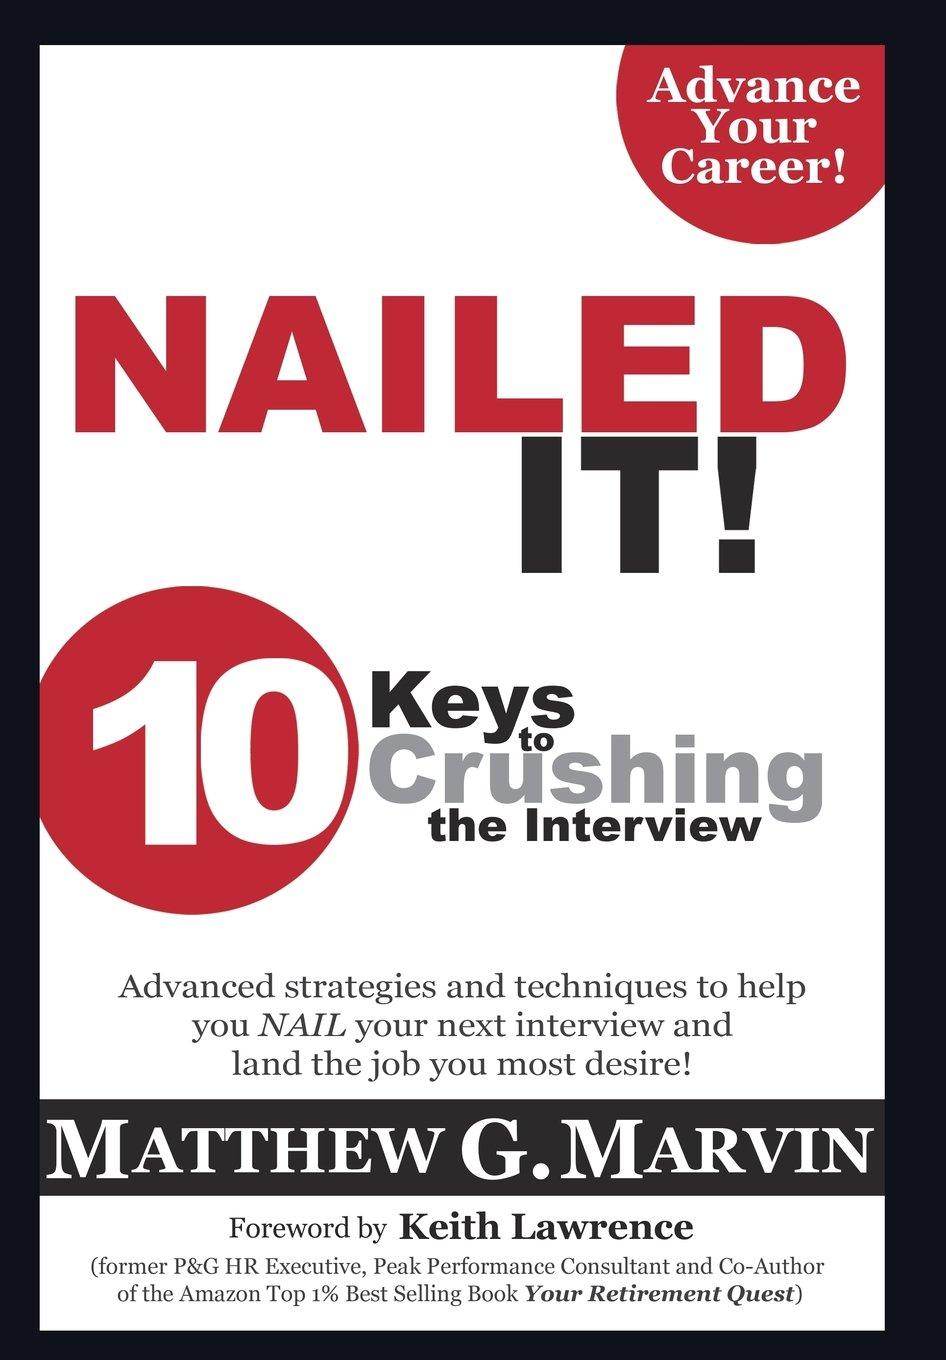 nailed it keys to crushing the interview matthew g marvin 10 keys to crushing the interview matthew g marvin 9781498426459 com books